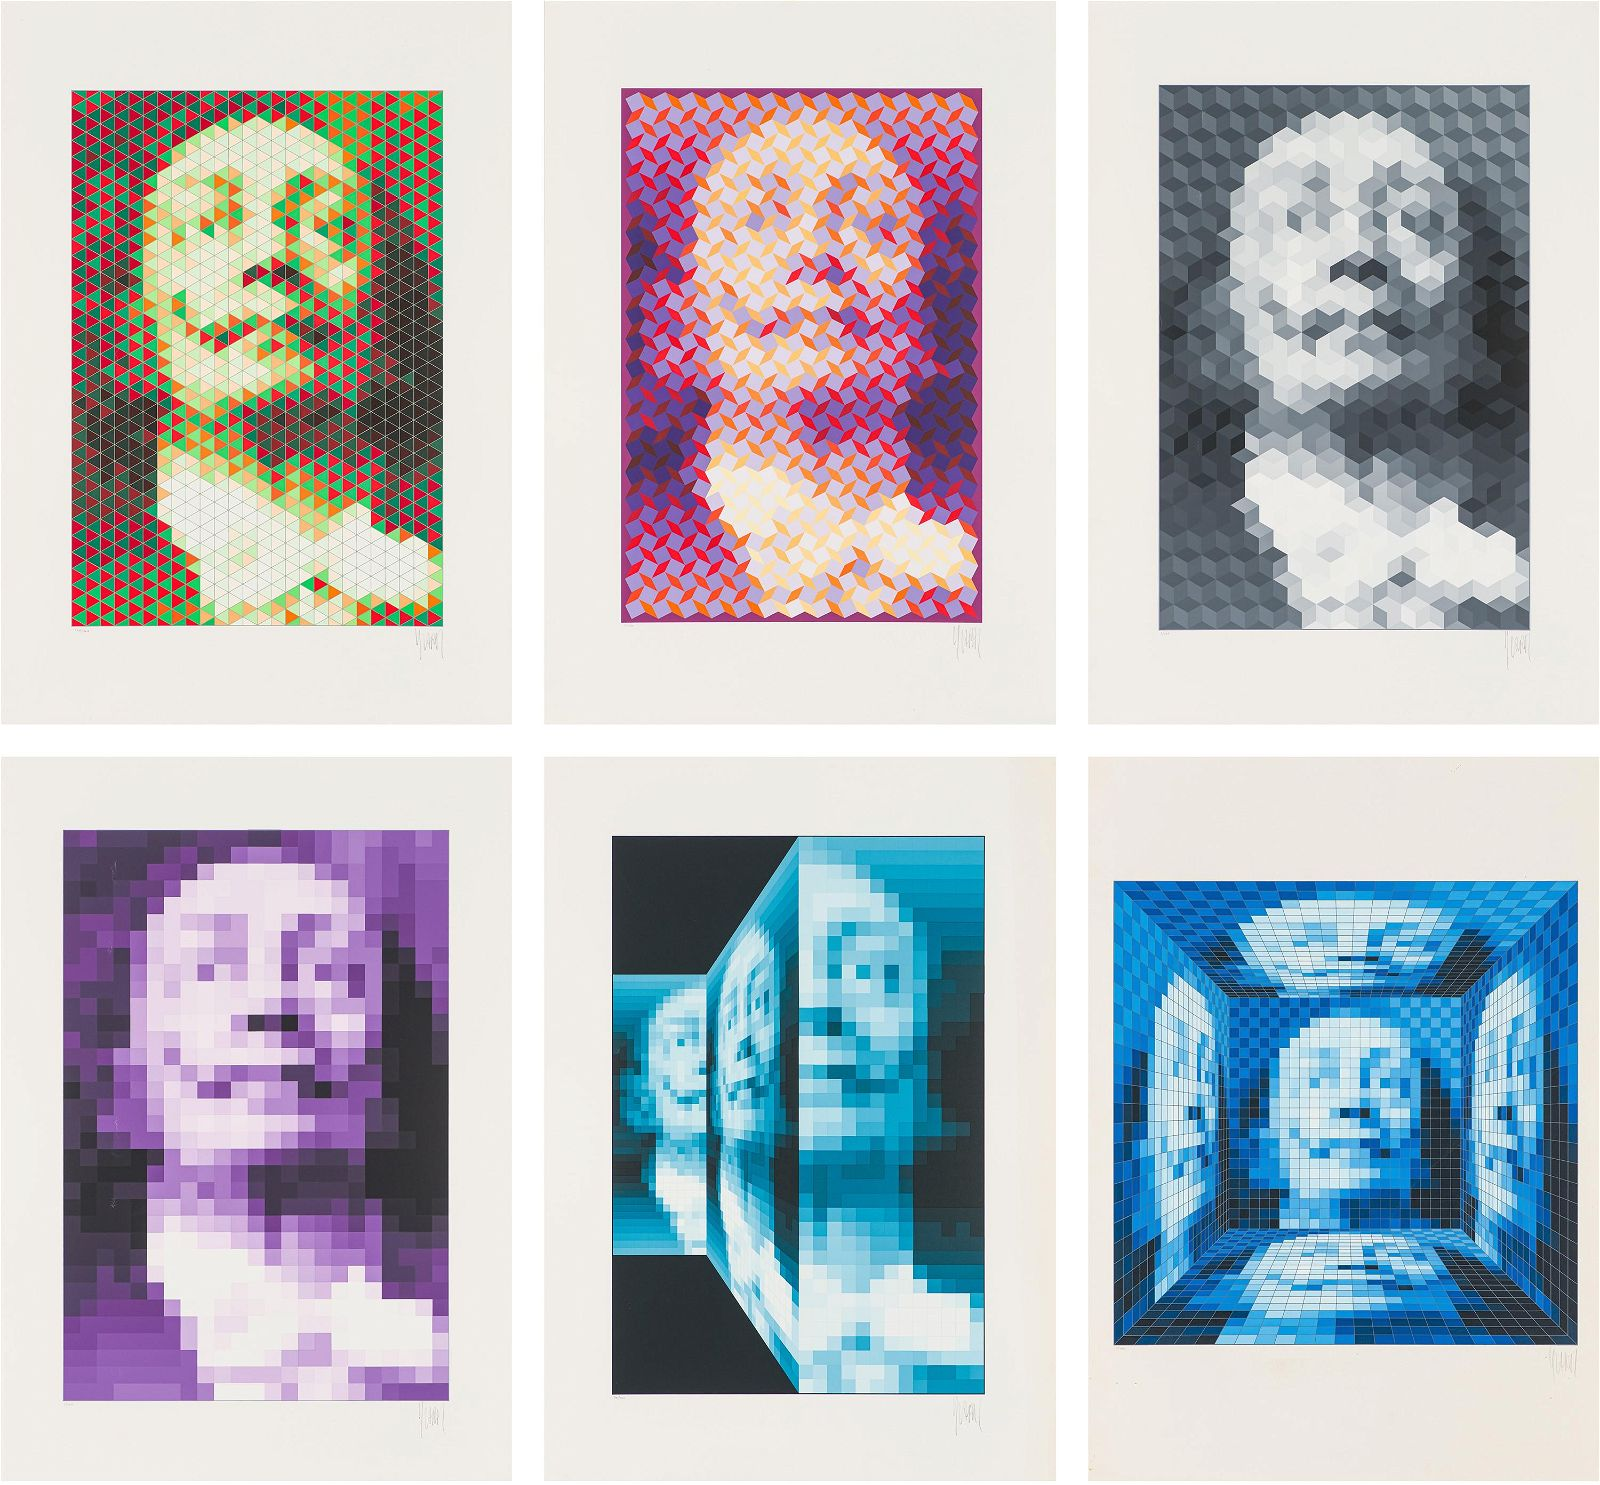 Yvaral (Jean-Pierre Vasarely) (6) Faces of Dalí, 1977